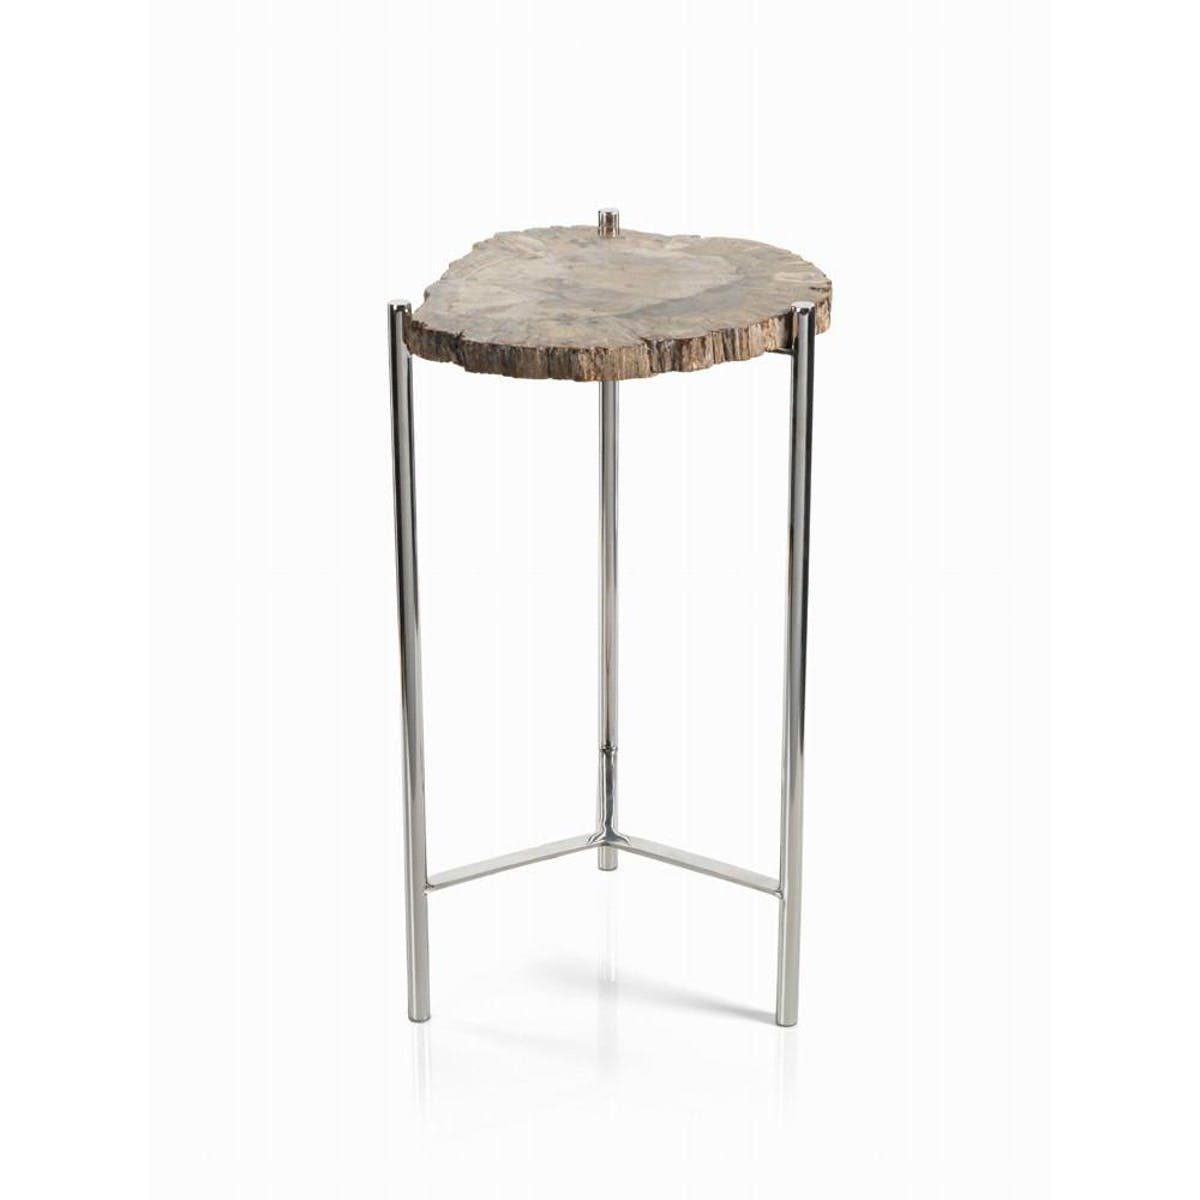 zodax pierce petrified wood accent table inch tall modish coffee with gold accents telephone side ideas for living room round plastic tables small glass dining white contemporary